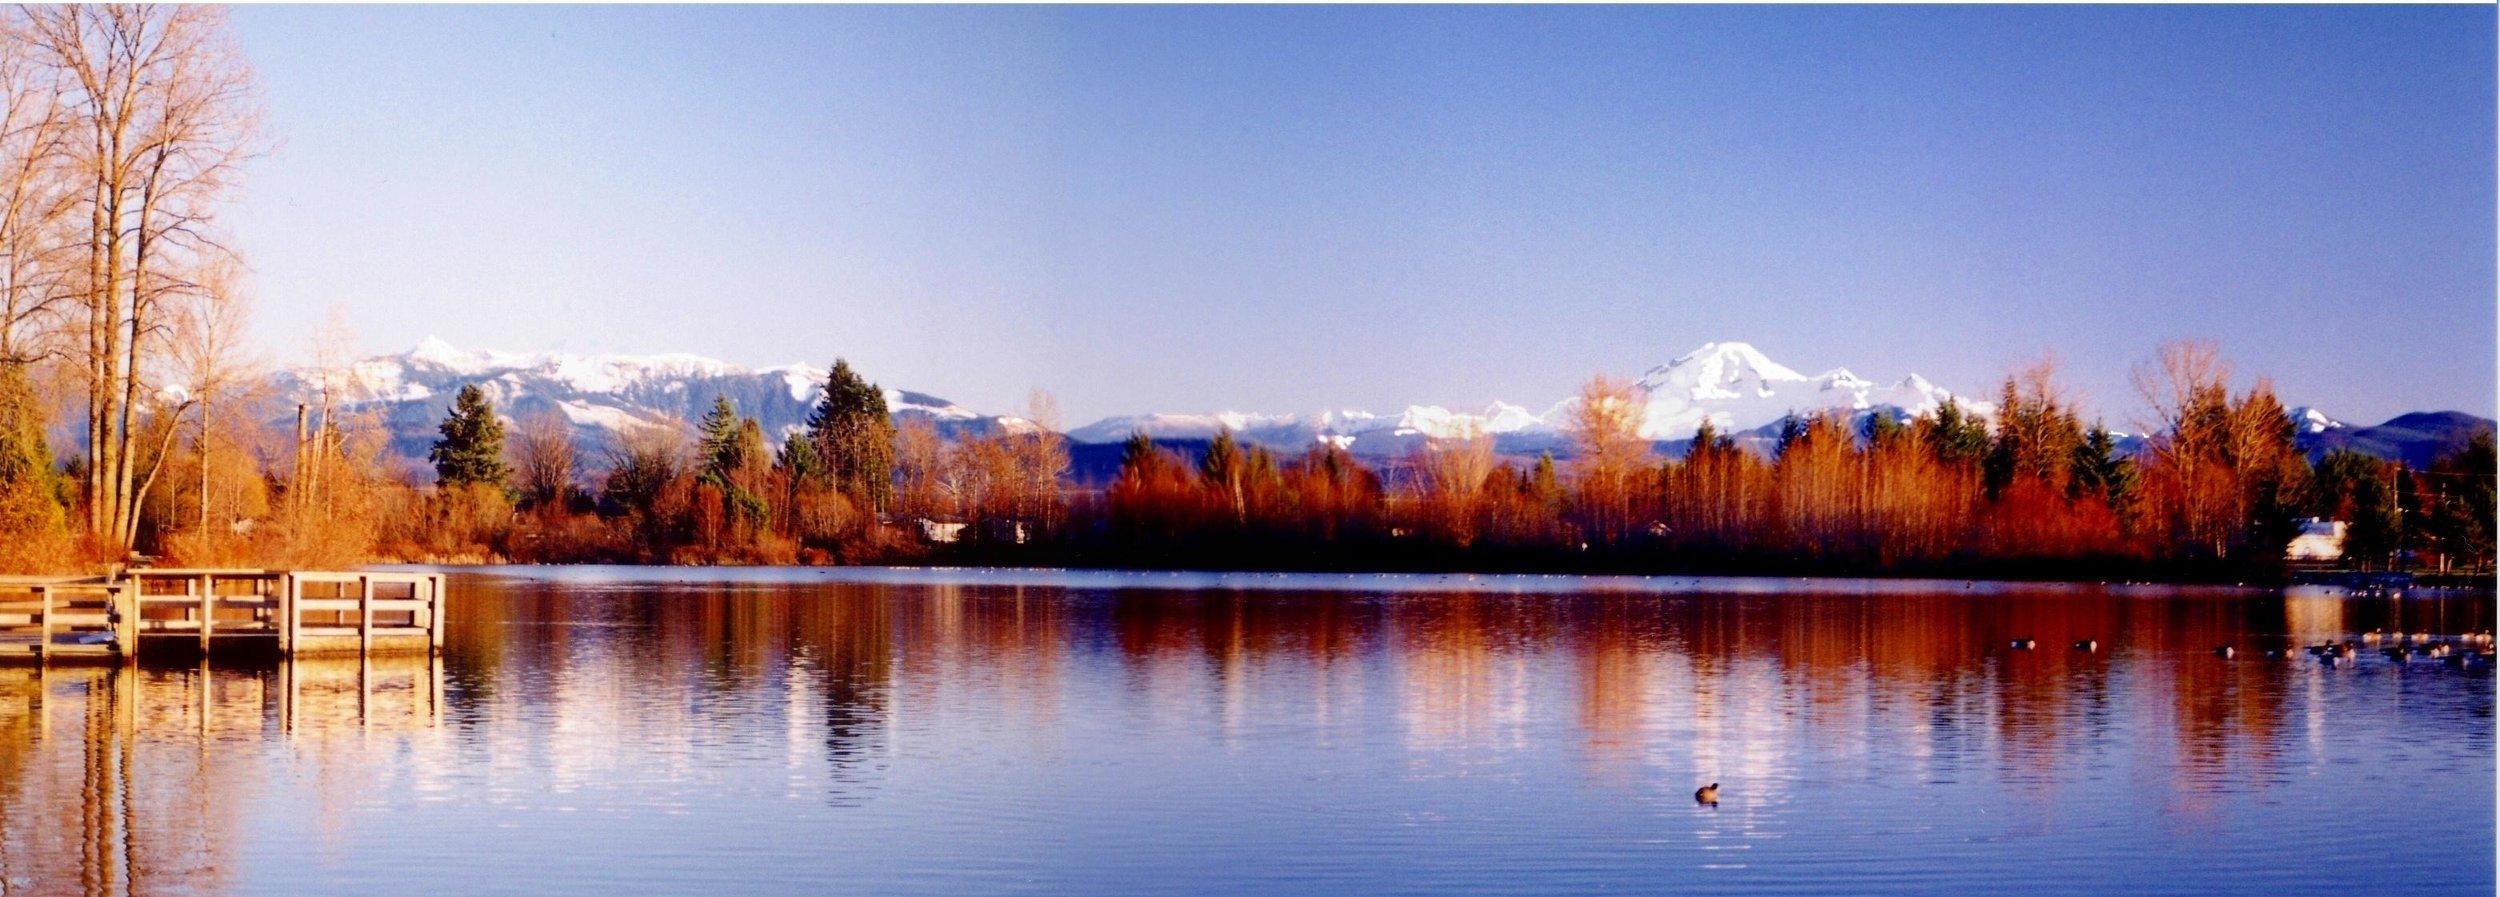 Mill Lake Park, Abbotsford, BC, Canada